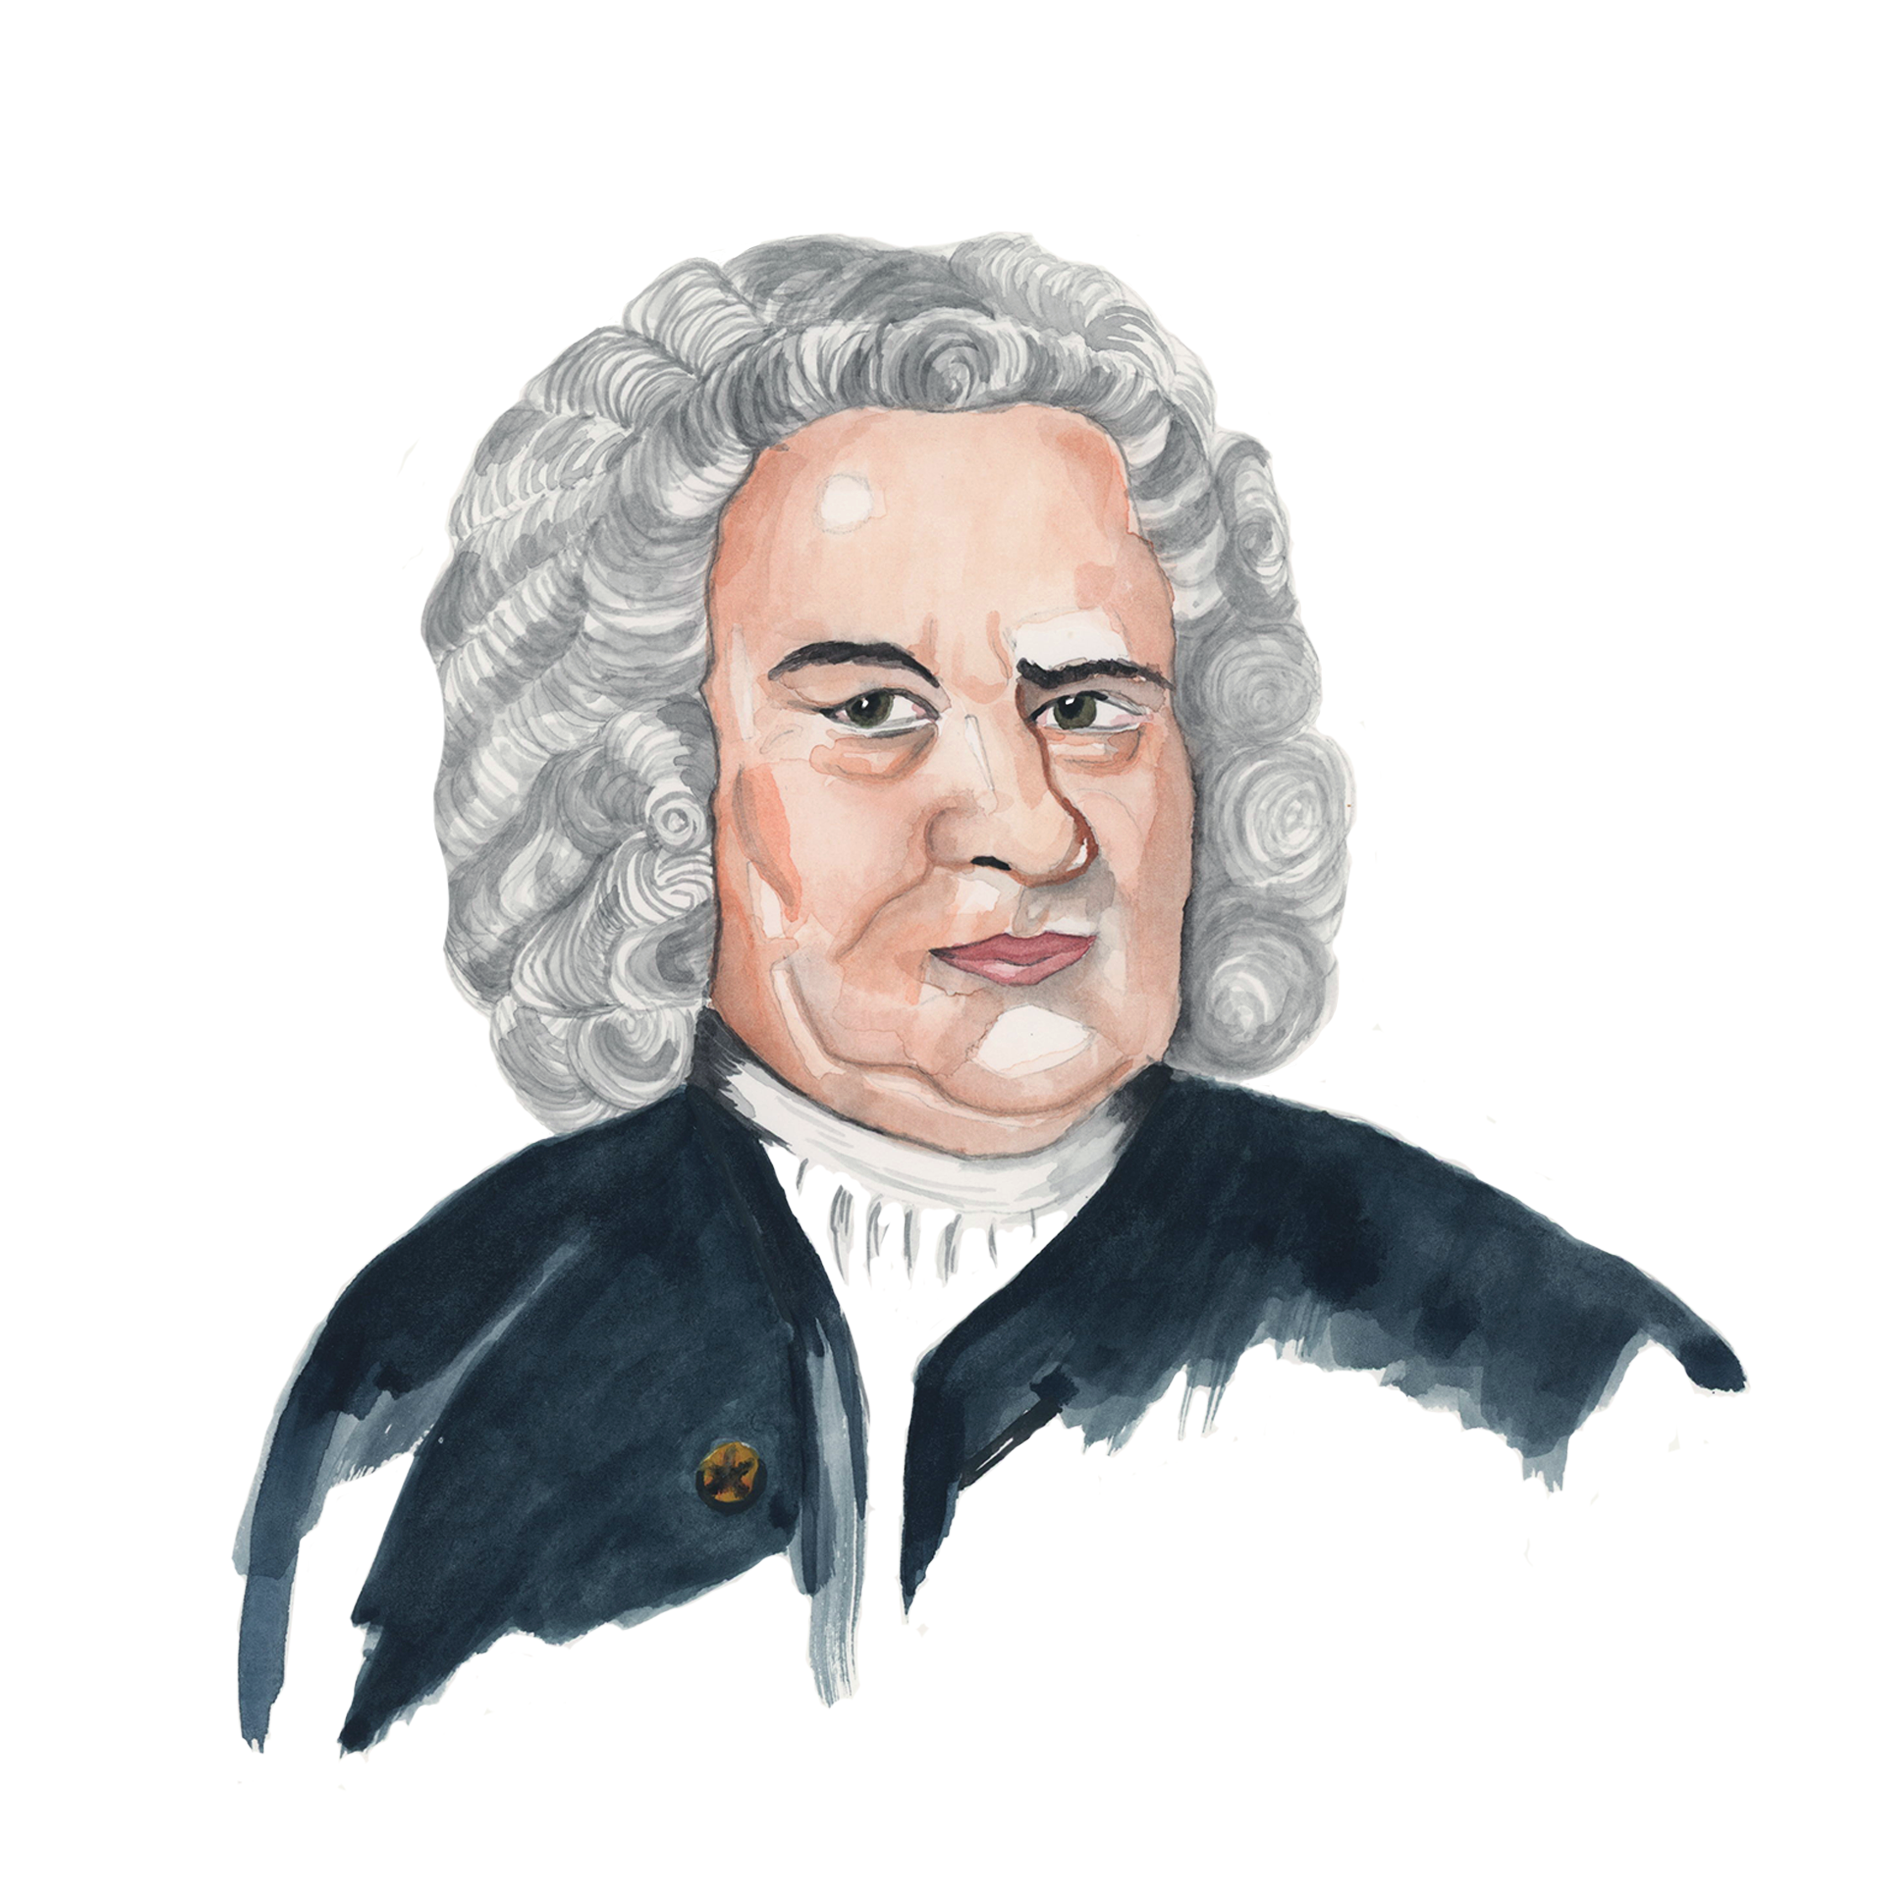 Bach (1).png